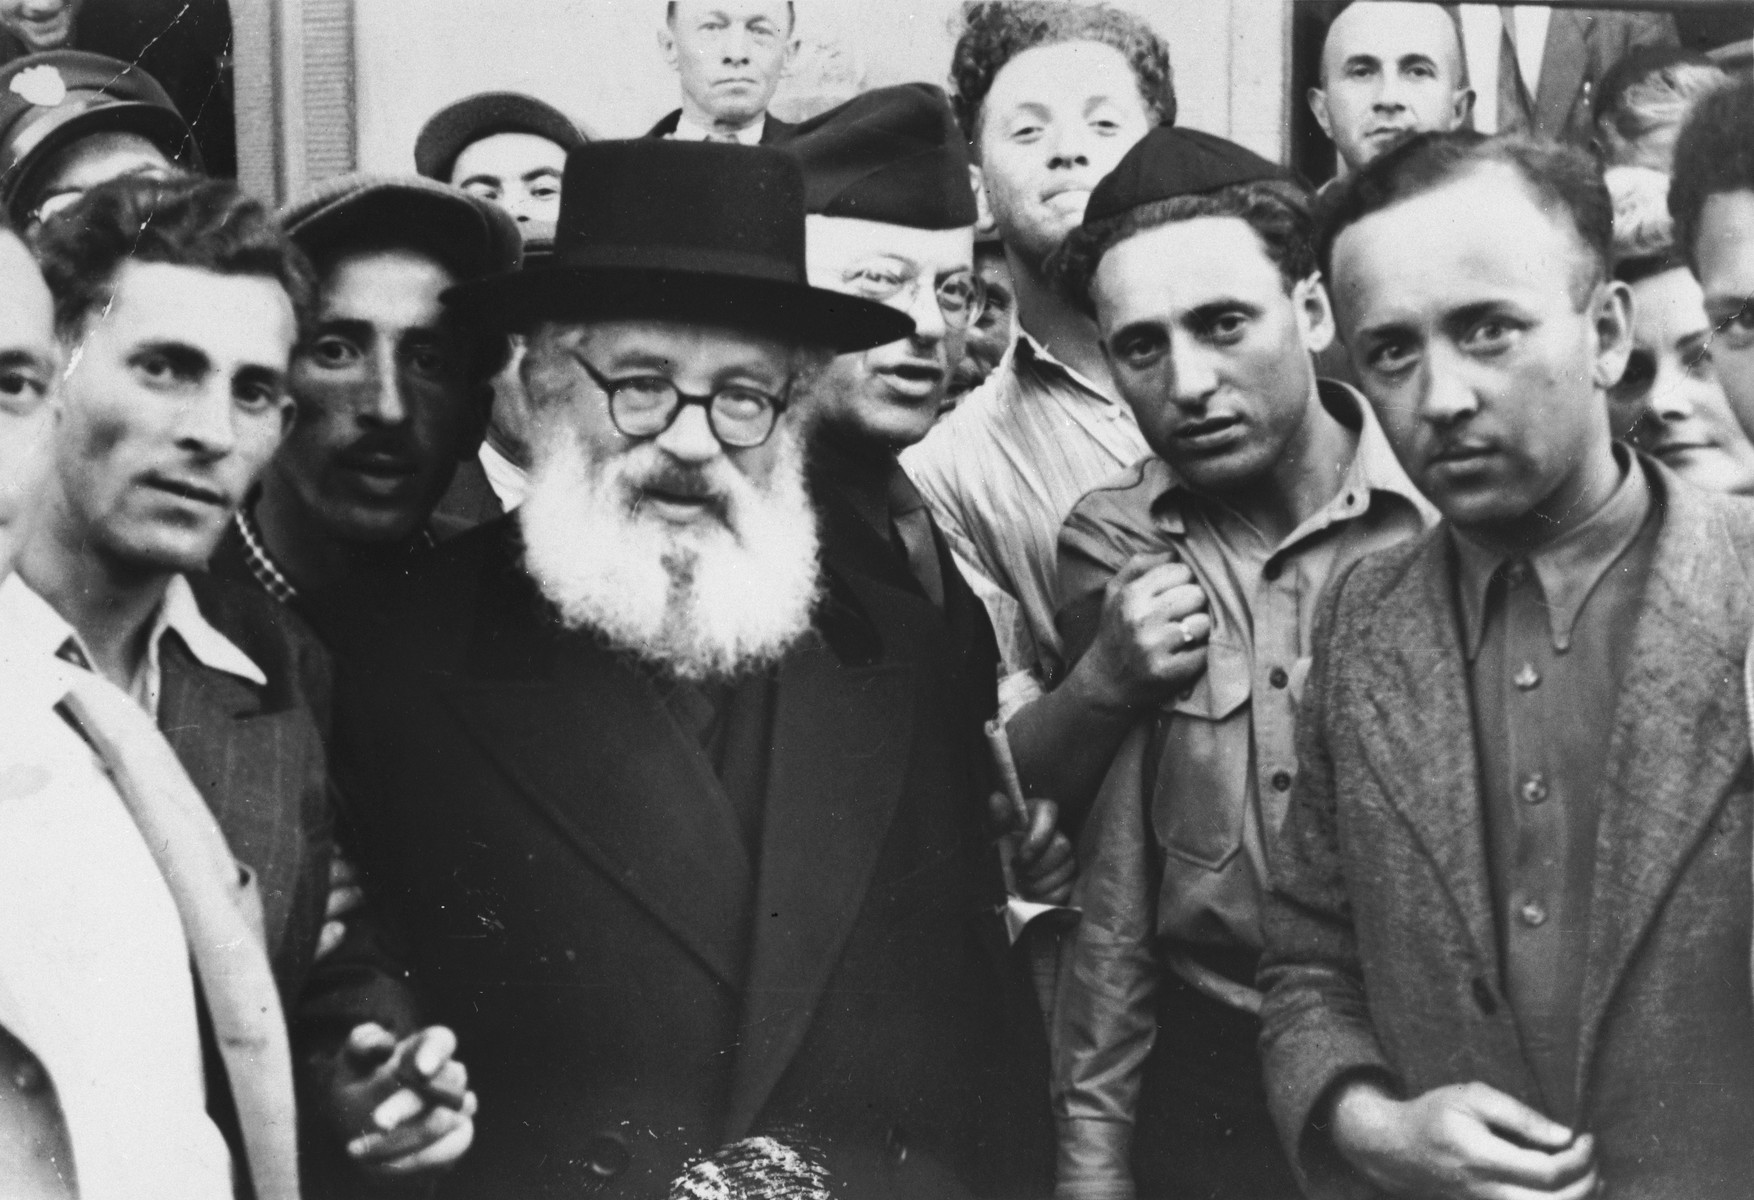 Ashkenazi Chief Rabbi of Palestine, Isaac Herzog, poses with Jewish DPs at the Lampertheim displaced persons camp during an official visit.  Izak Lachter is pictured wearing a skull cap next to Rabbi Herzog.  In the foreground at the right is Dr. Shmarholtz.